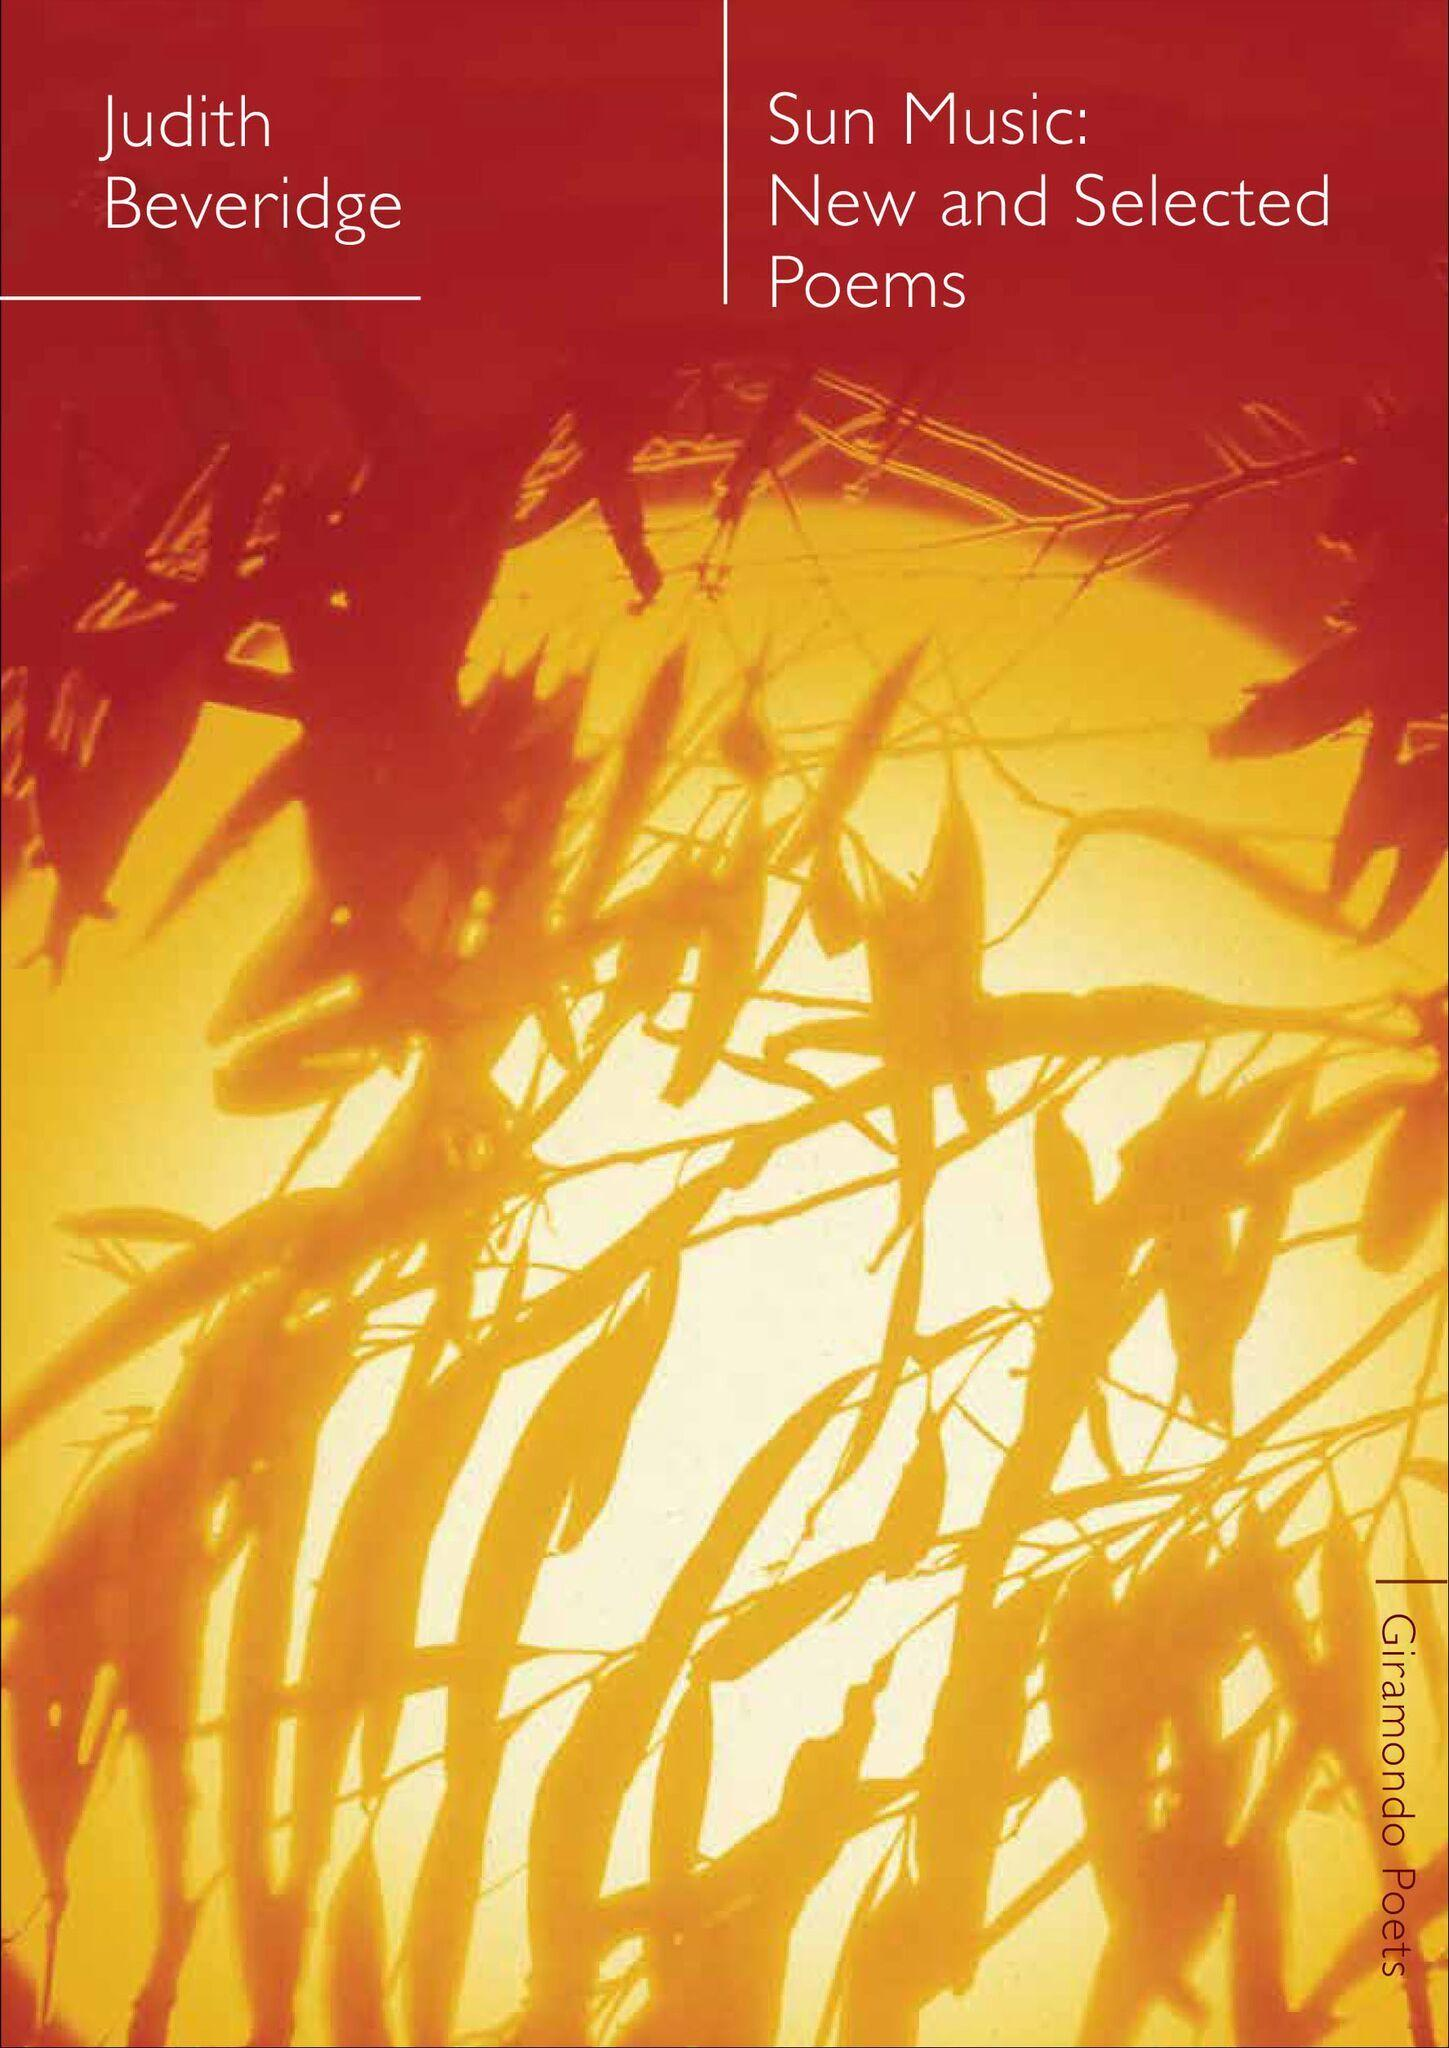 Sun Music: New and Selected Poems